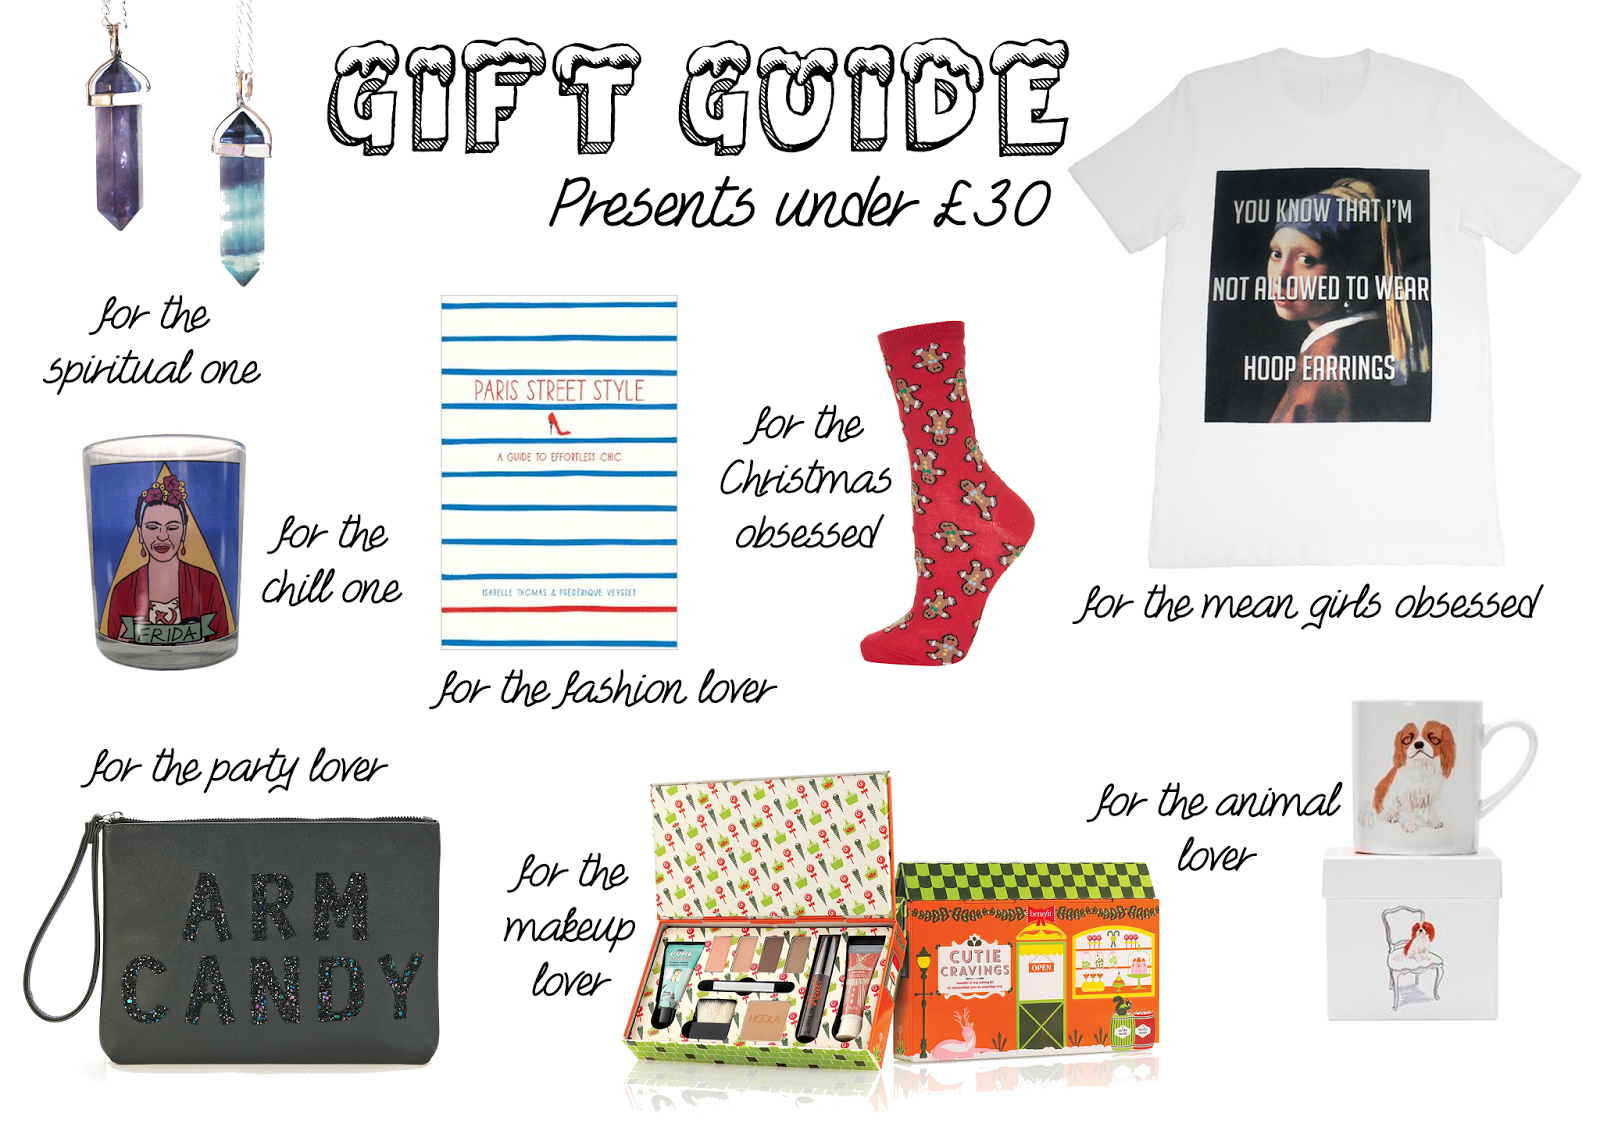 Christmas gift guide 2014; presents under £30 including crystal necklaces, fashion books, glitter clutch bags, dog mugs, benefit makeup gift sets, socks and a mean girls t-shirt